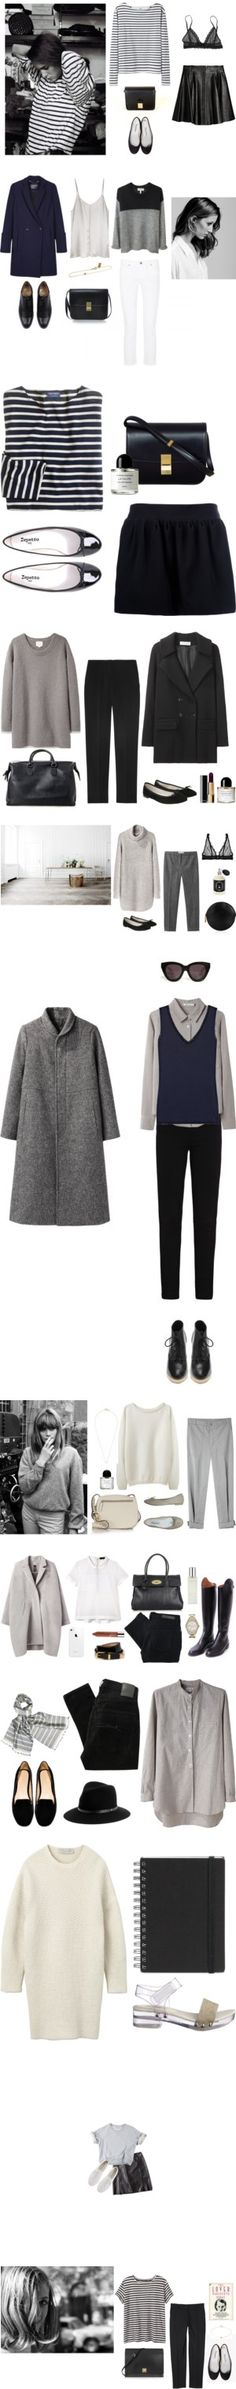 """""""black + white"""" by calivintage ❤ liked on Polyvore"""